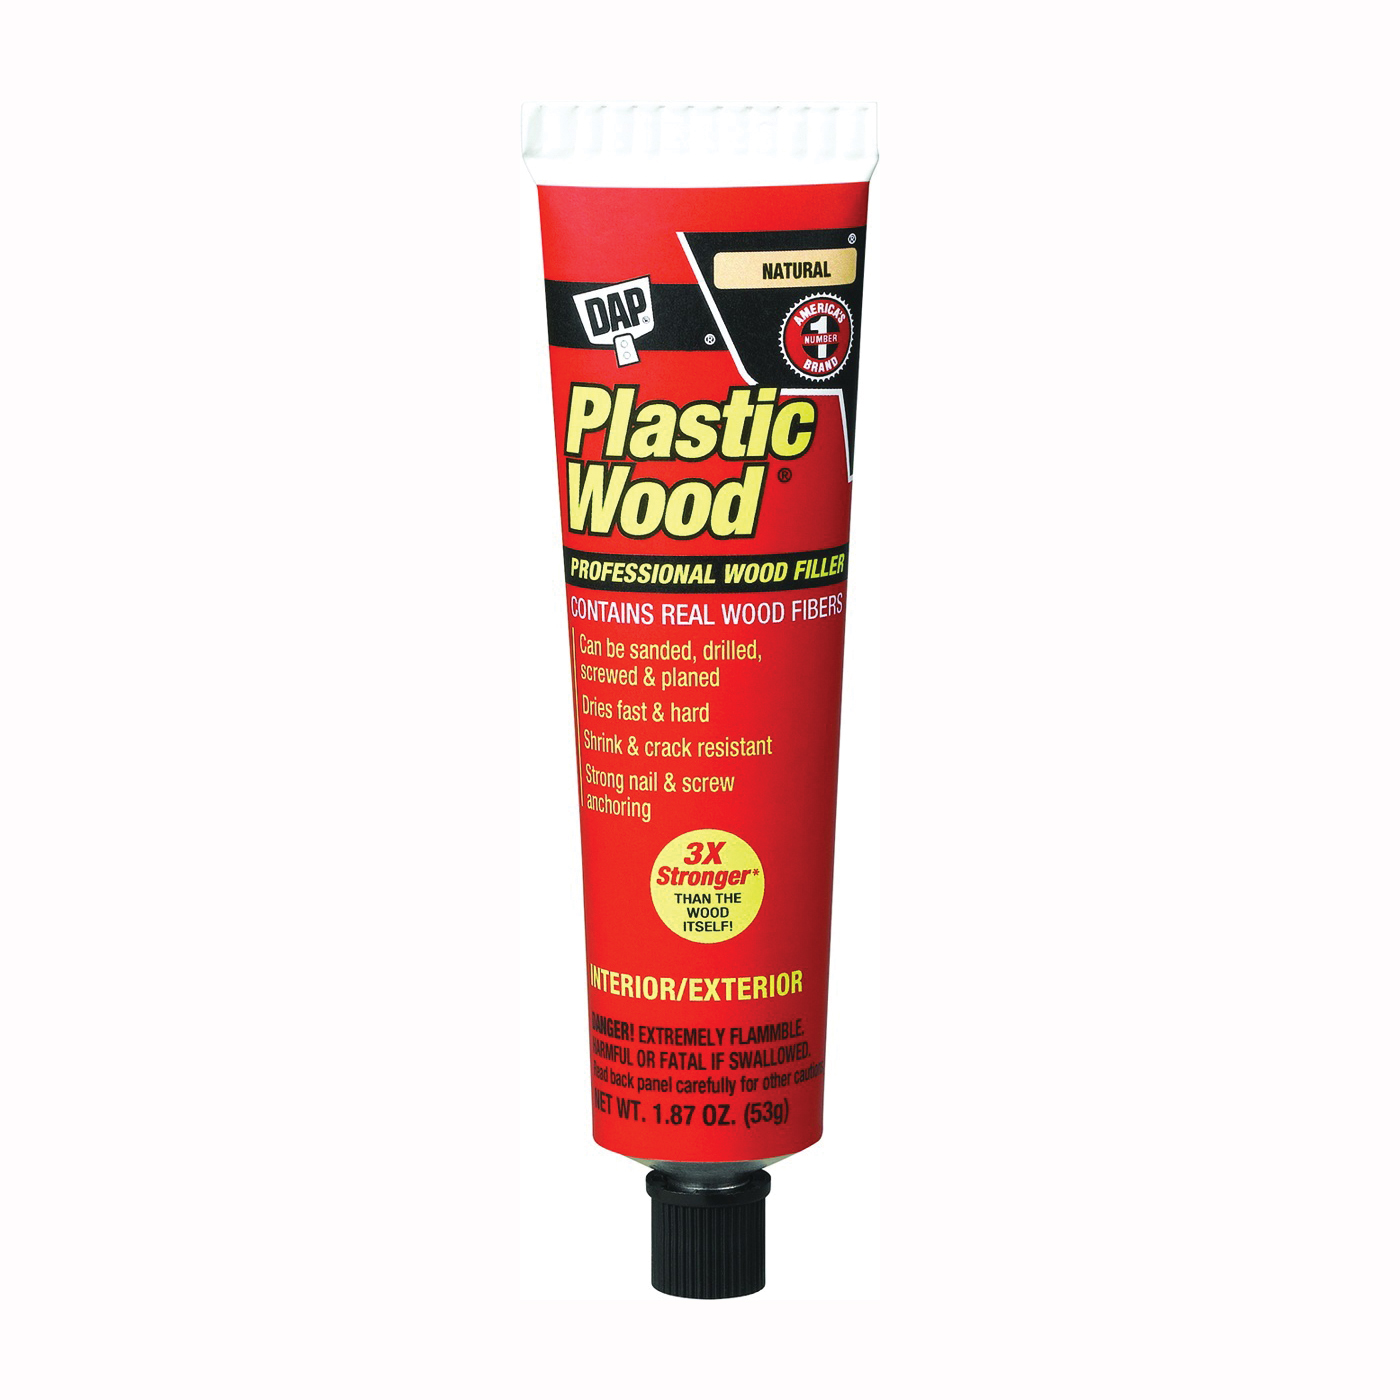 Picture of DAP Plastic Wood 21500 Wood Filler, Paste, Strong Solvent, Natural, 1.87 oz Package